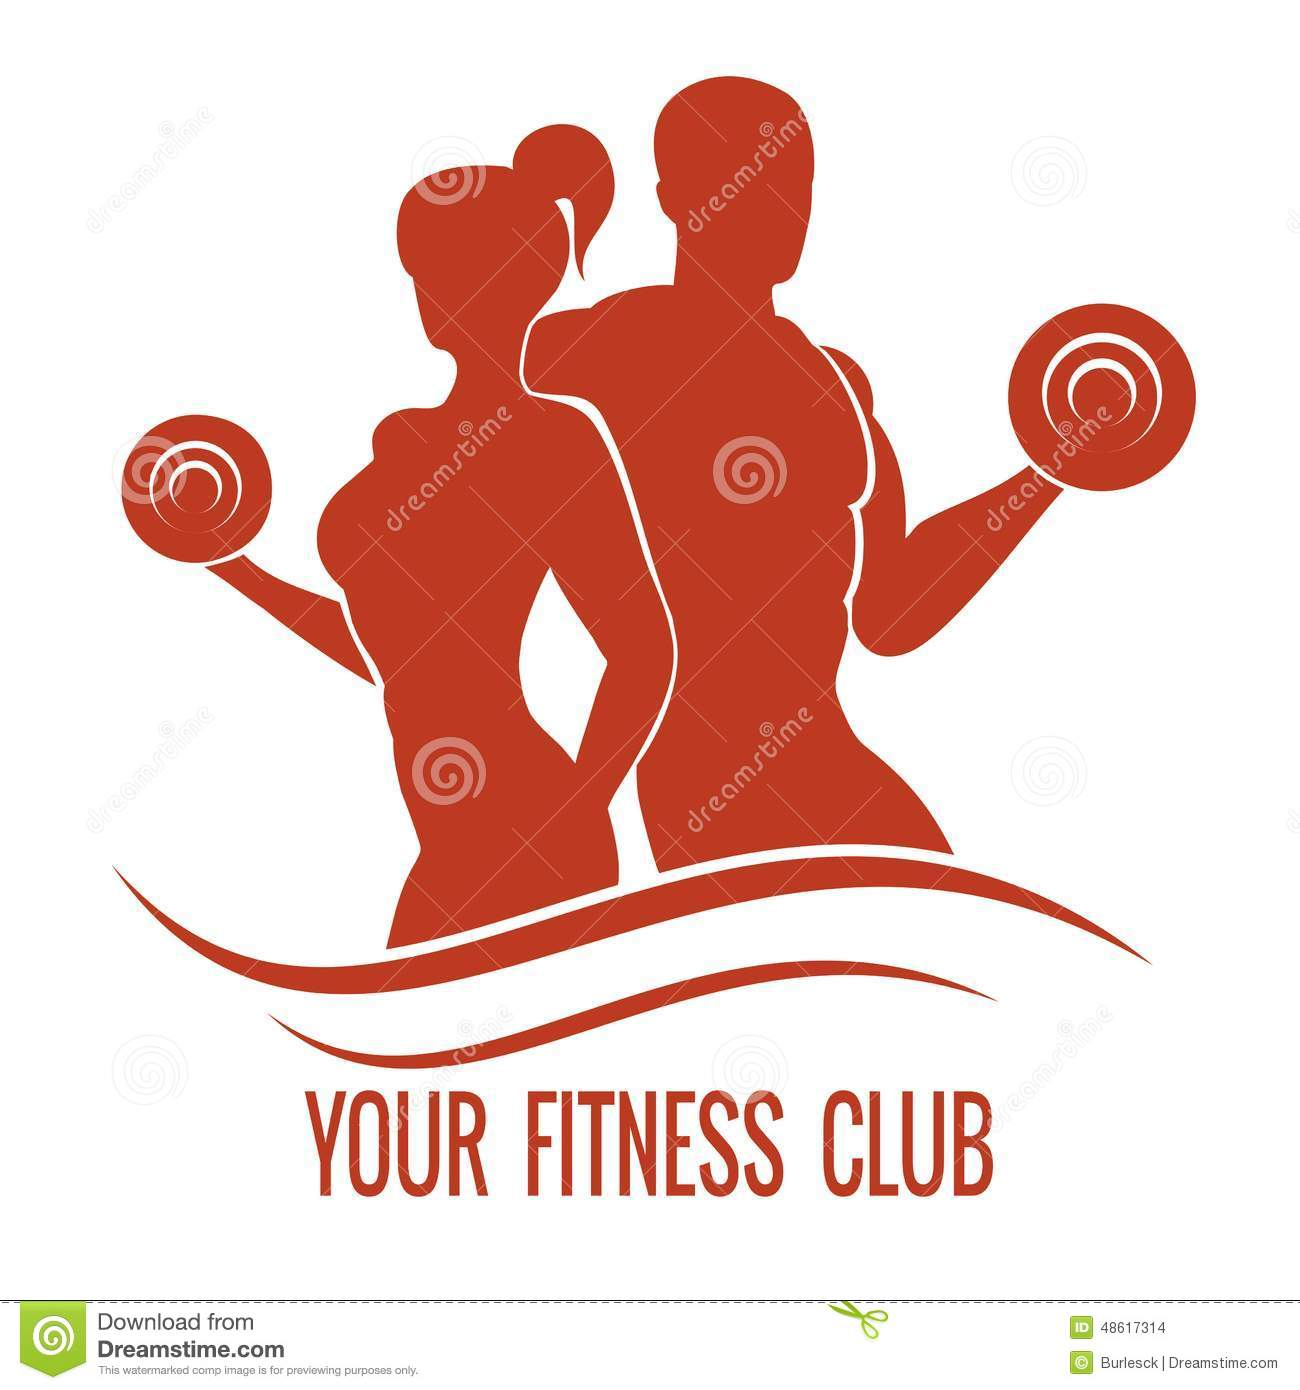 Fitness logo with musc...